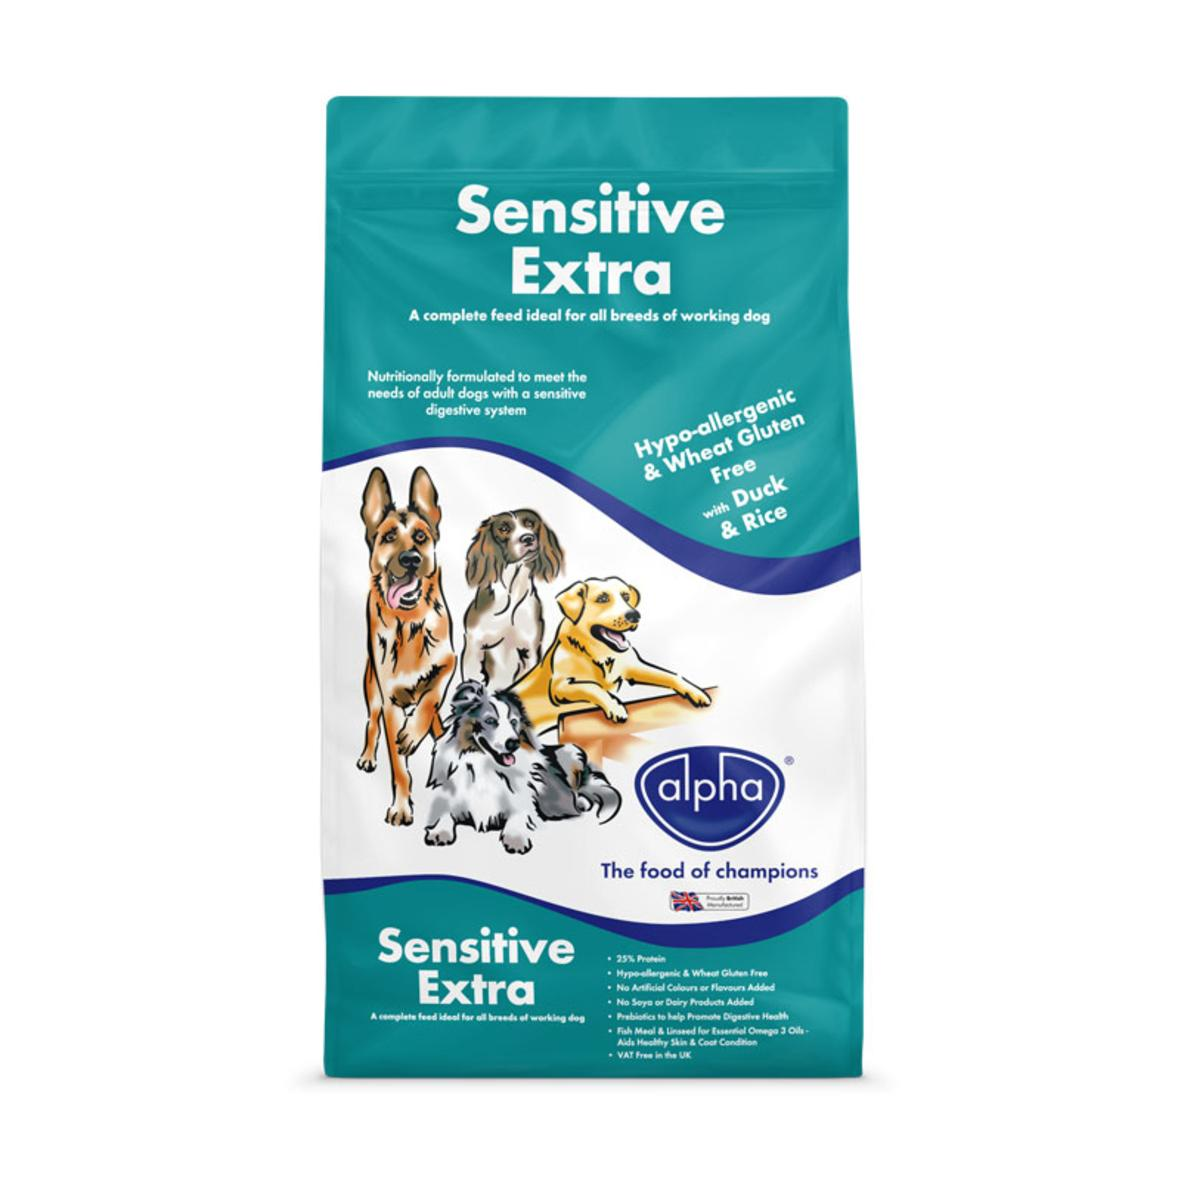 Alpha Sensitive Extra with Duck and Rice 15kg VAT FREE (Wheat Gluten Free)